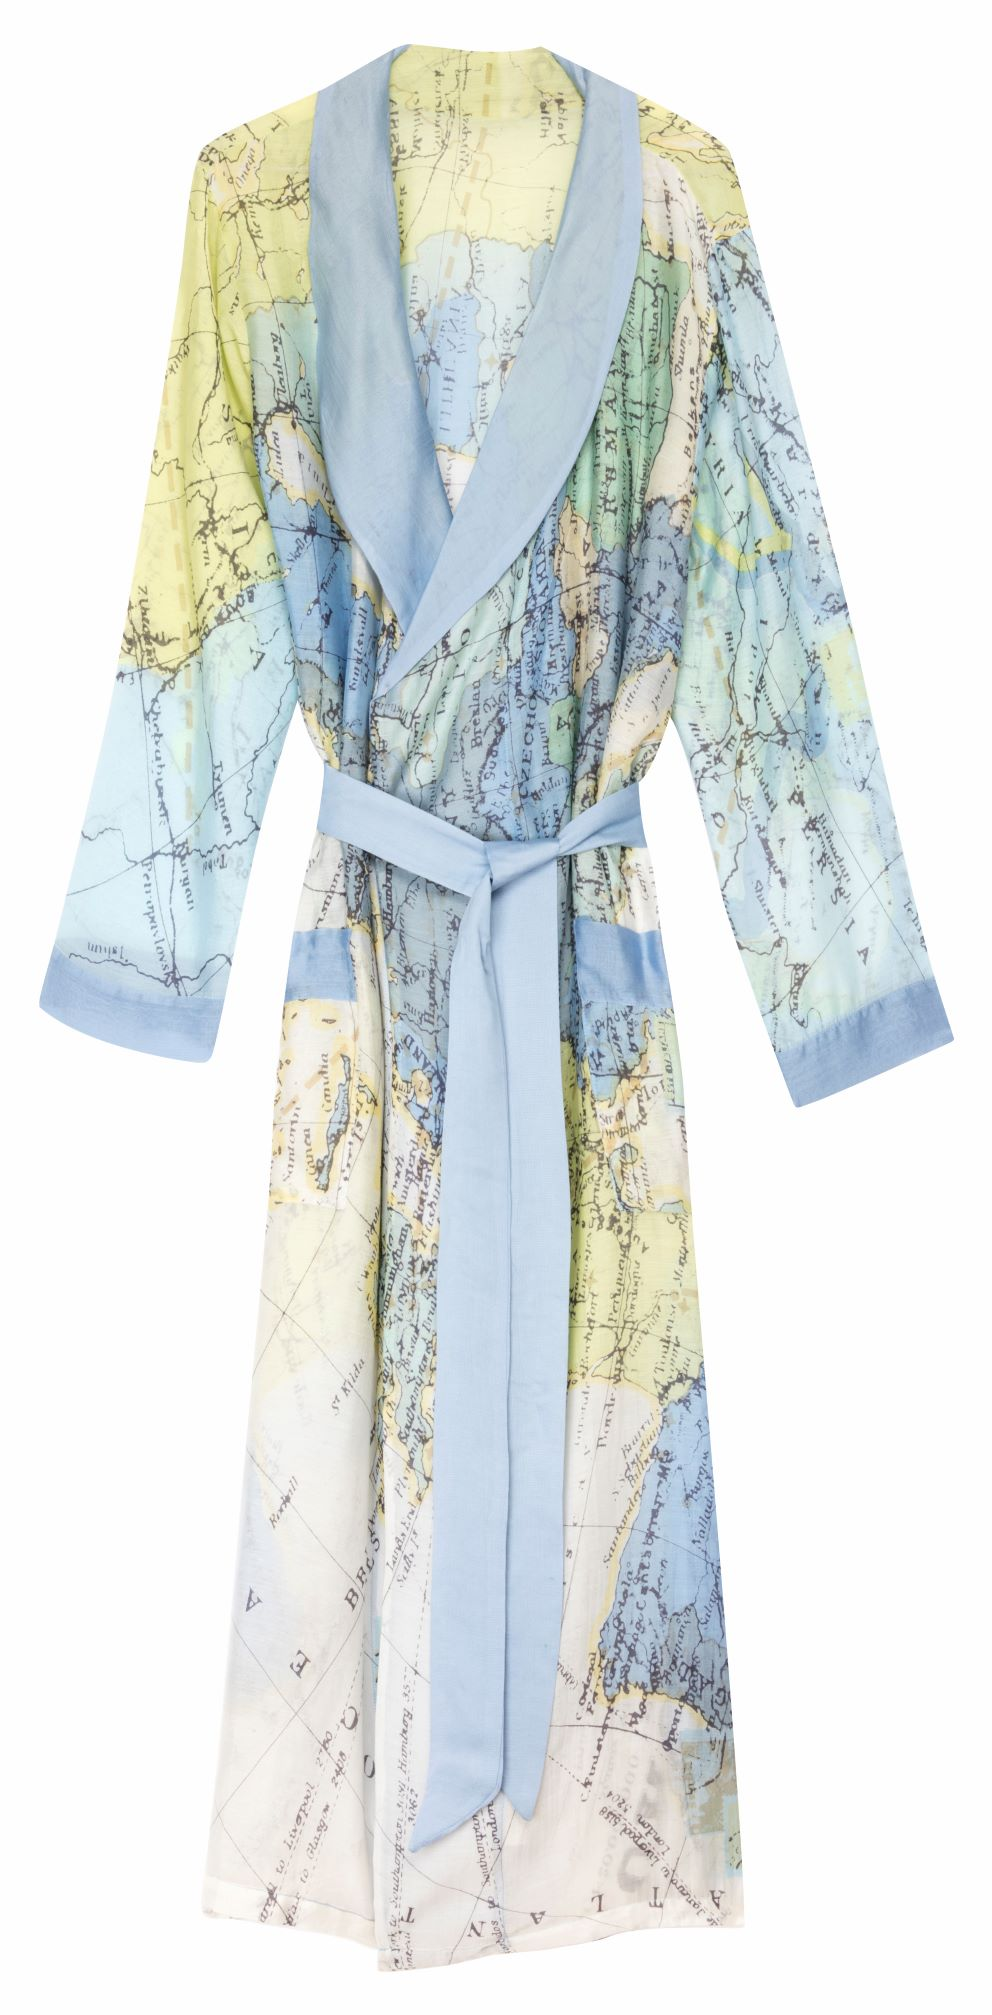 Etiquette Dressing Gowns The Simple Things